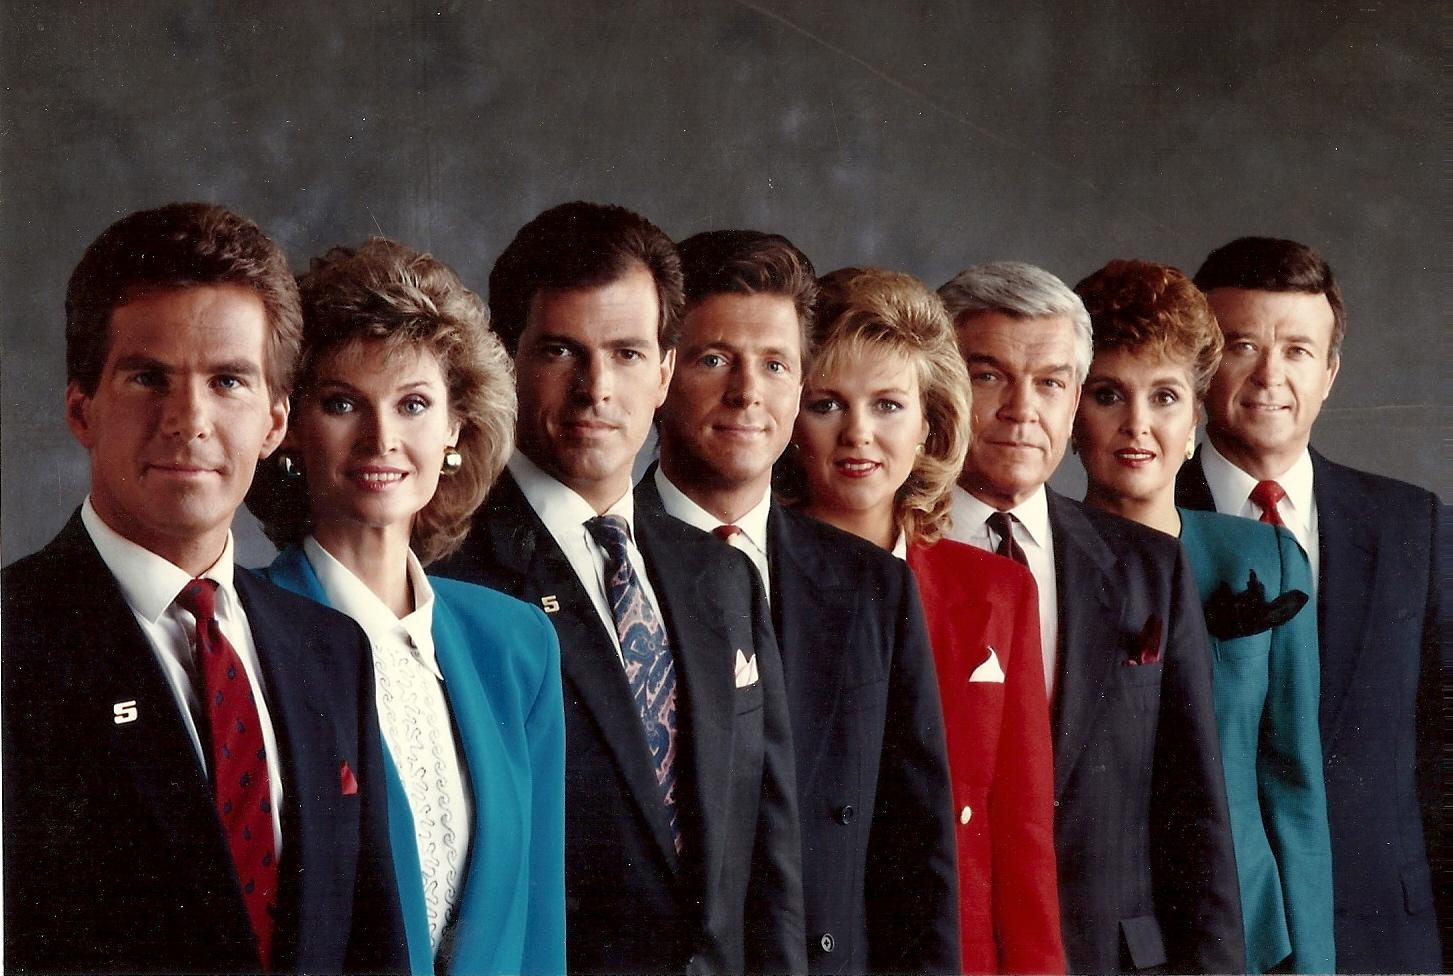 This late 1980s photo of the Channel 5 news team is pretty